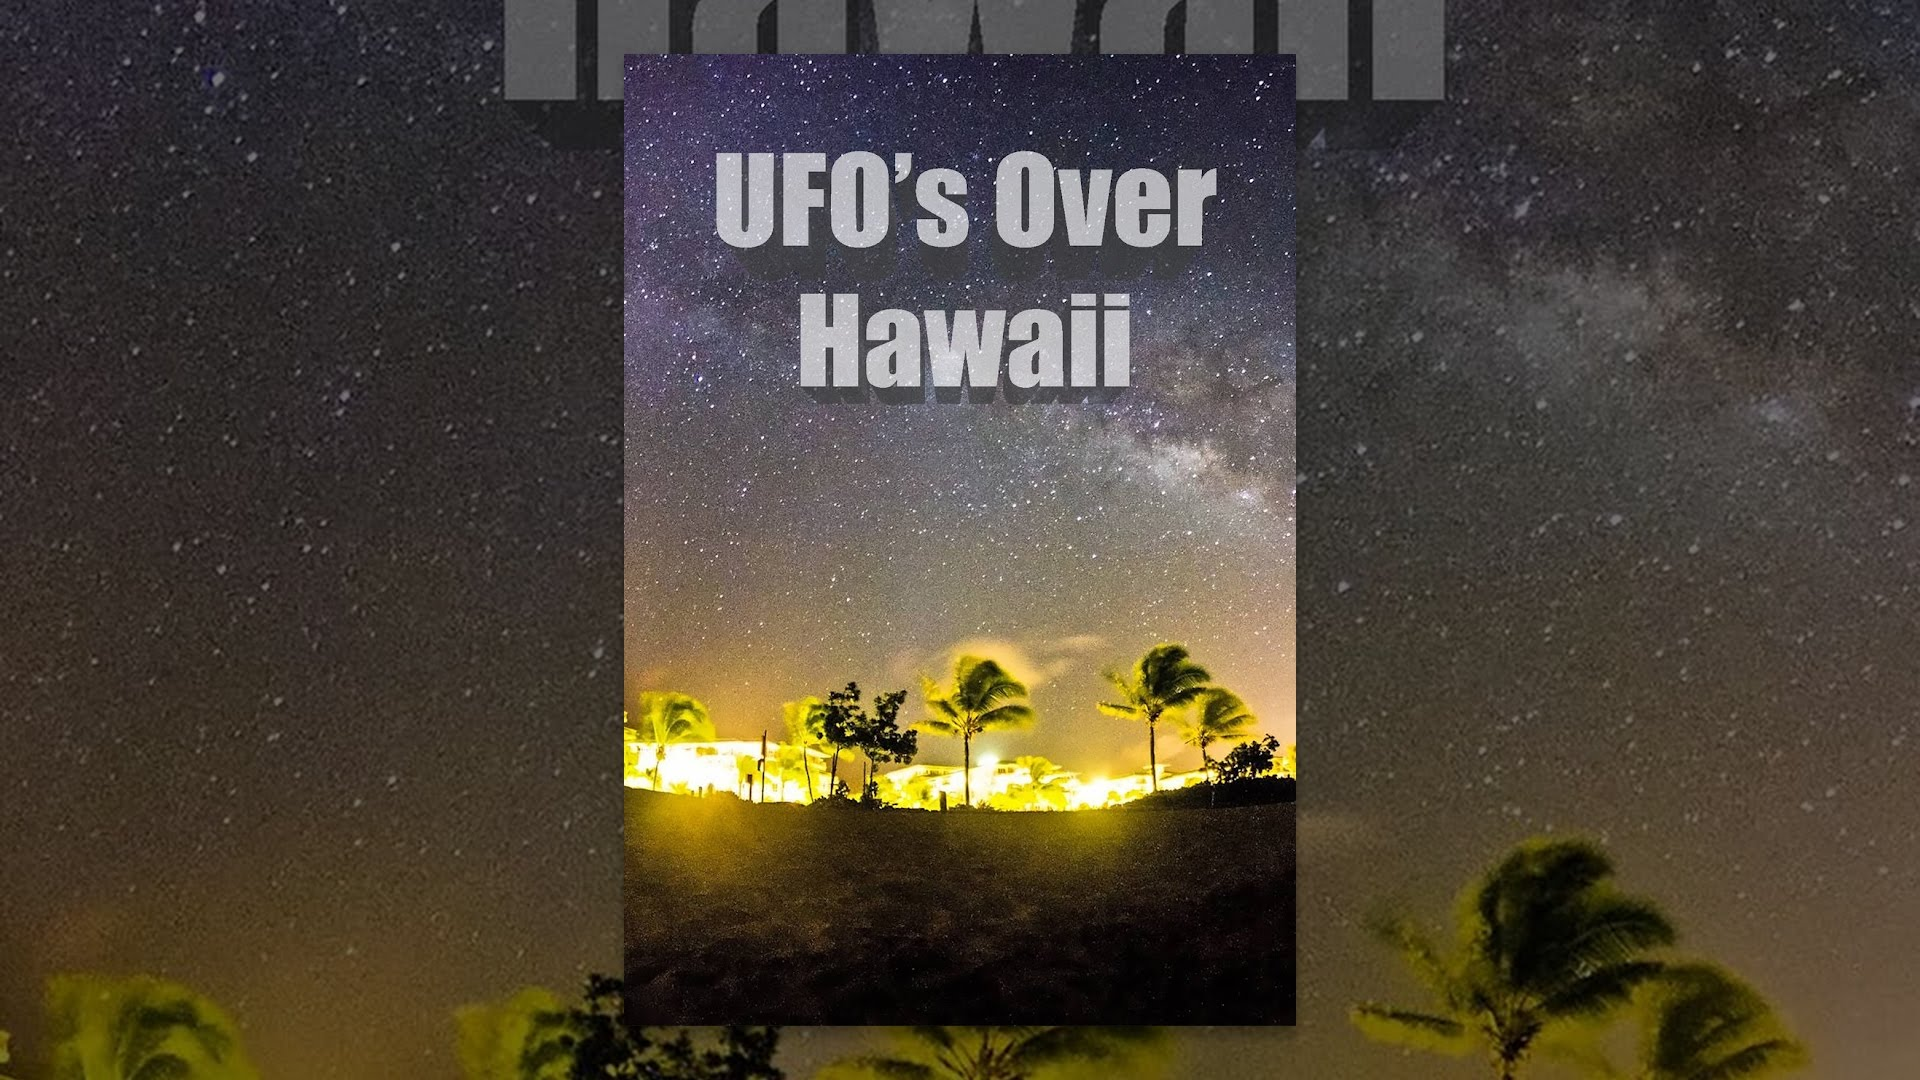 UFOs Over Hawaii